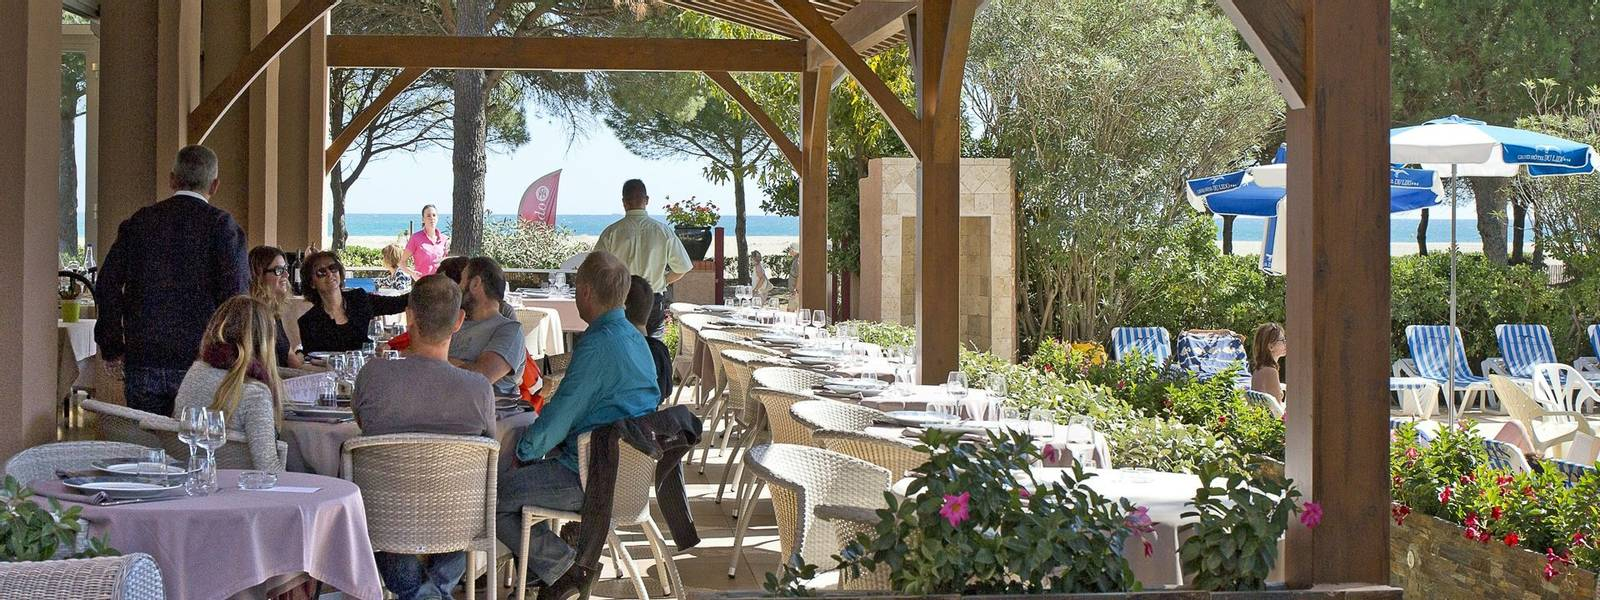 French Catalonia - Grand Hotel du Lido - terrasse-du-restaurant_25888944682_o.jpg